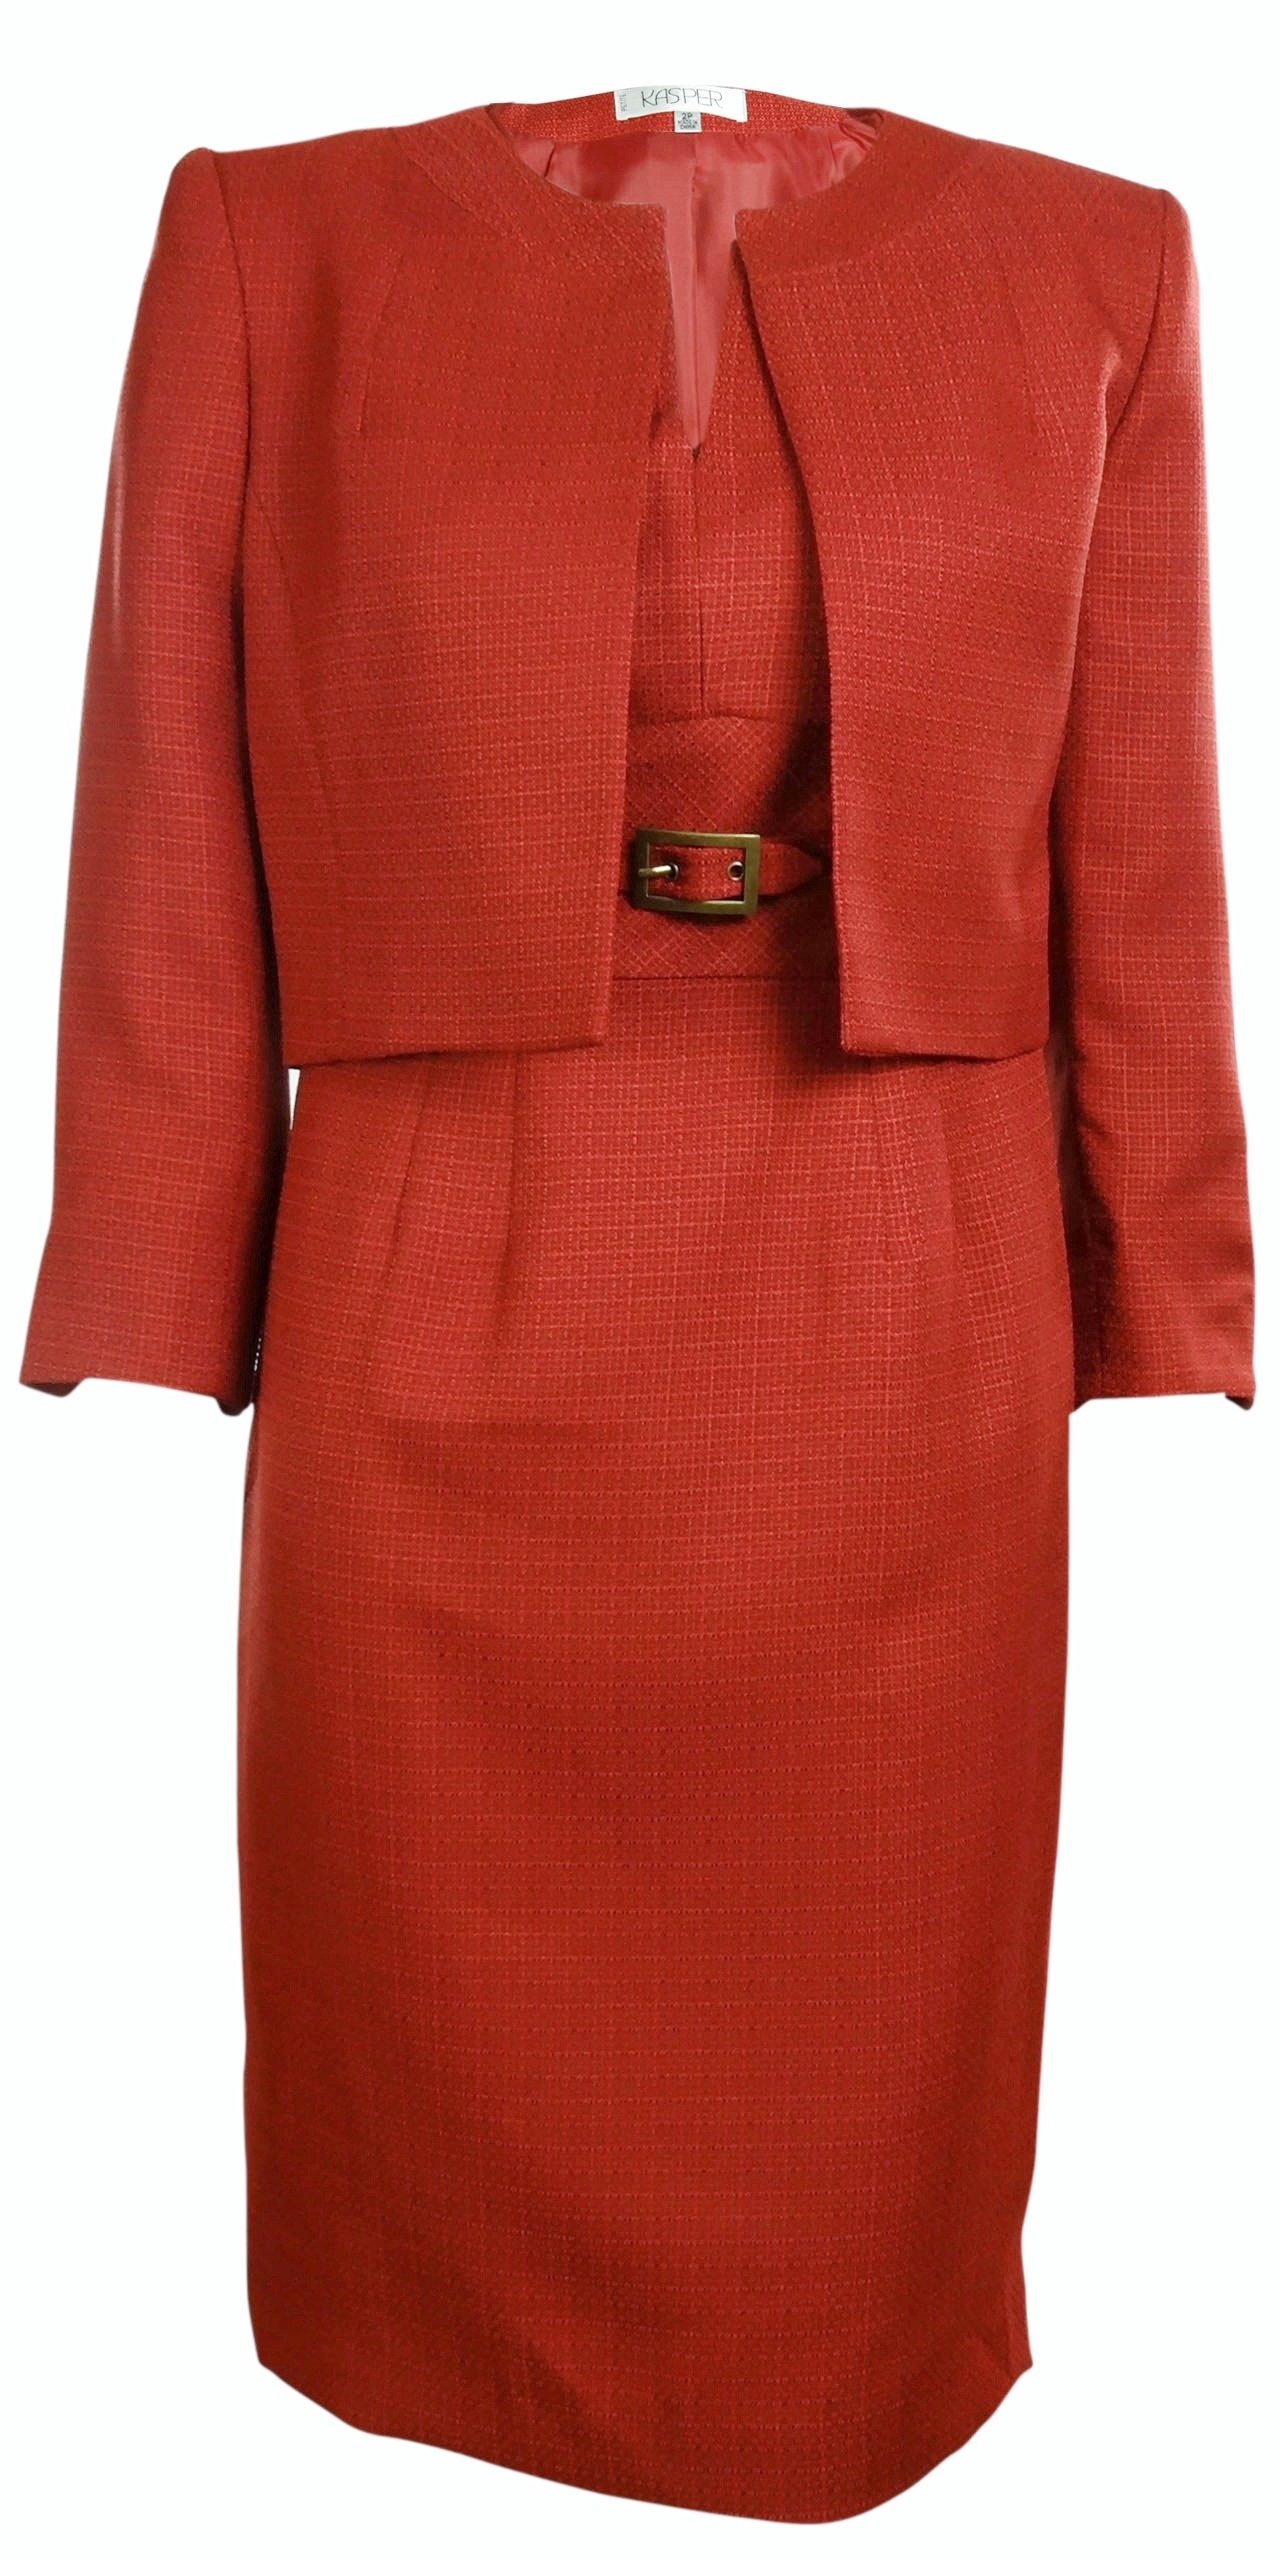 Kasper Women's Business Suit Dress Set (4, Dark Rust) by Kasper